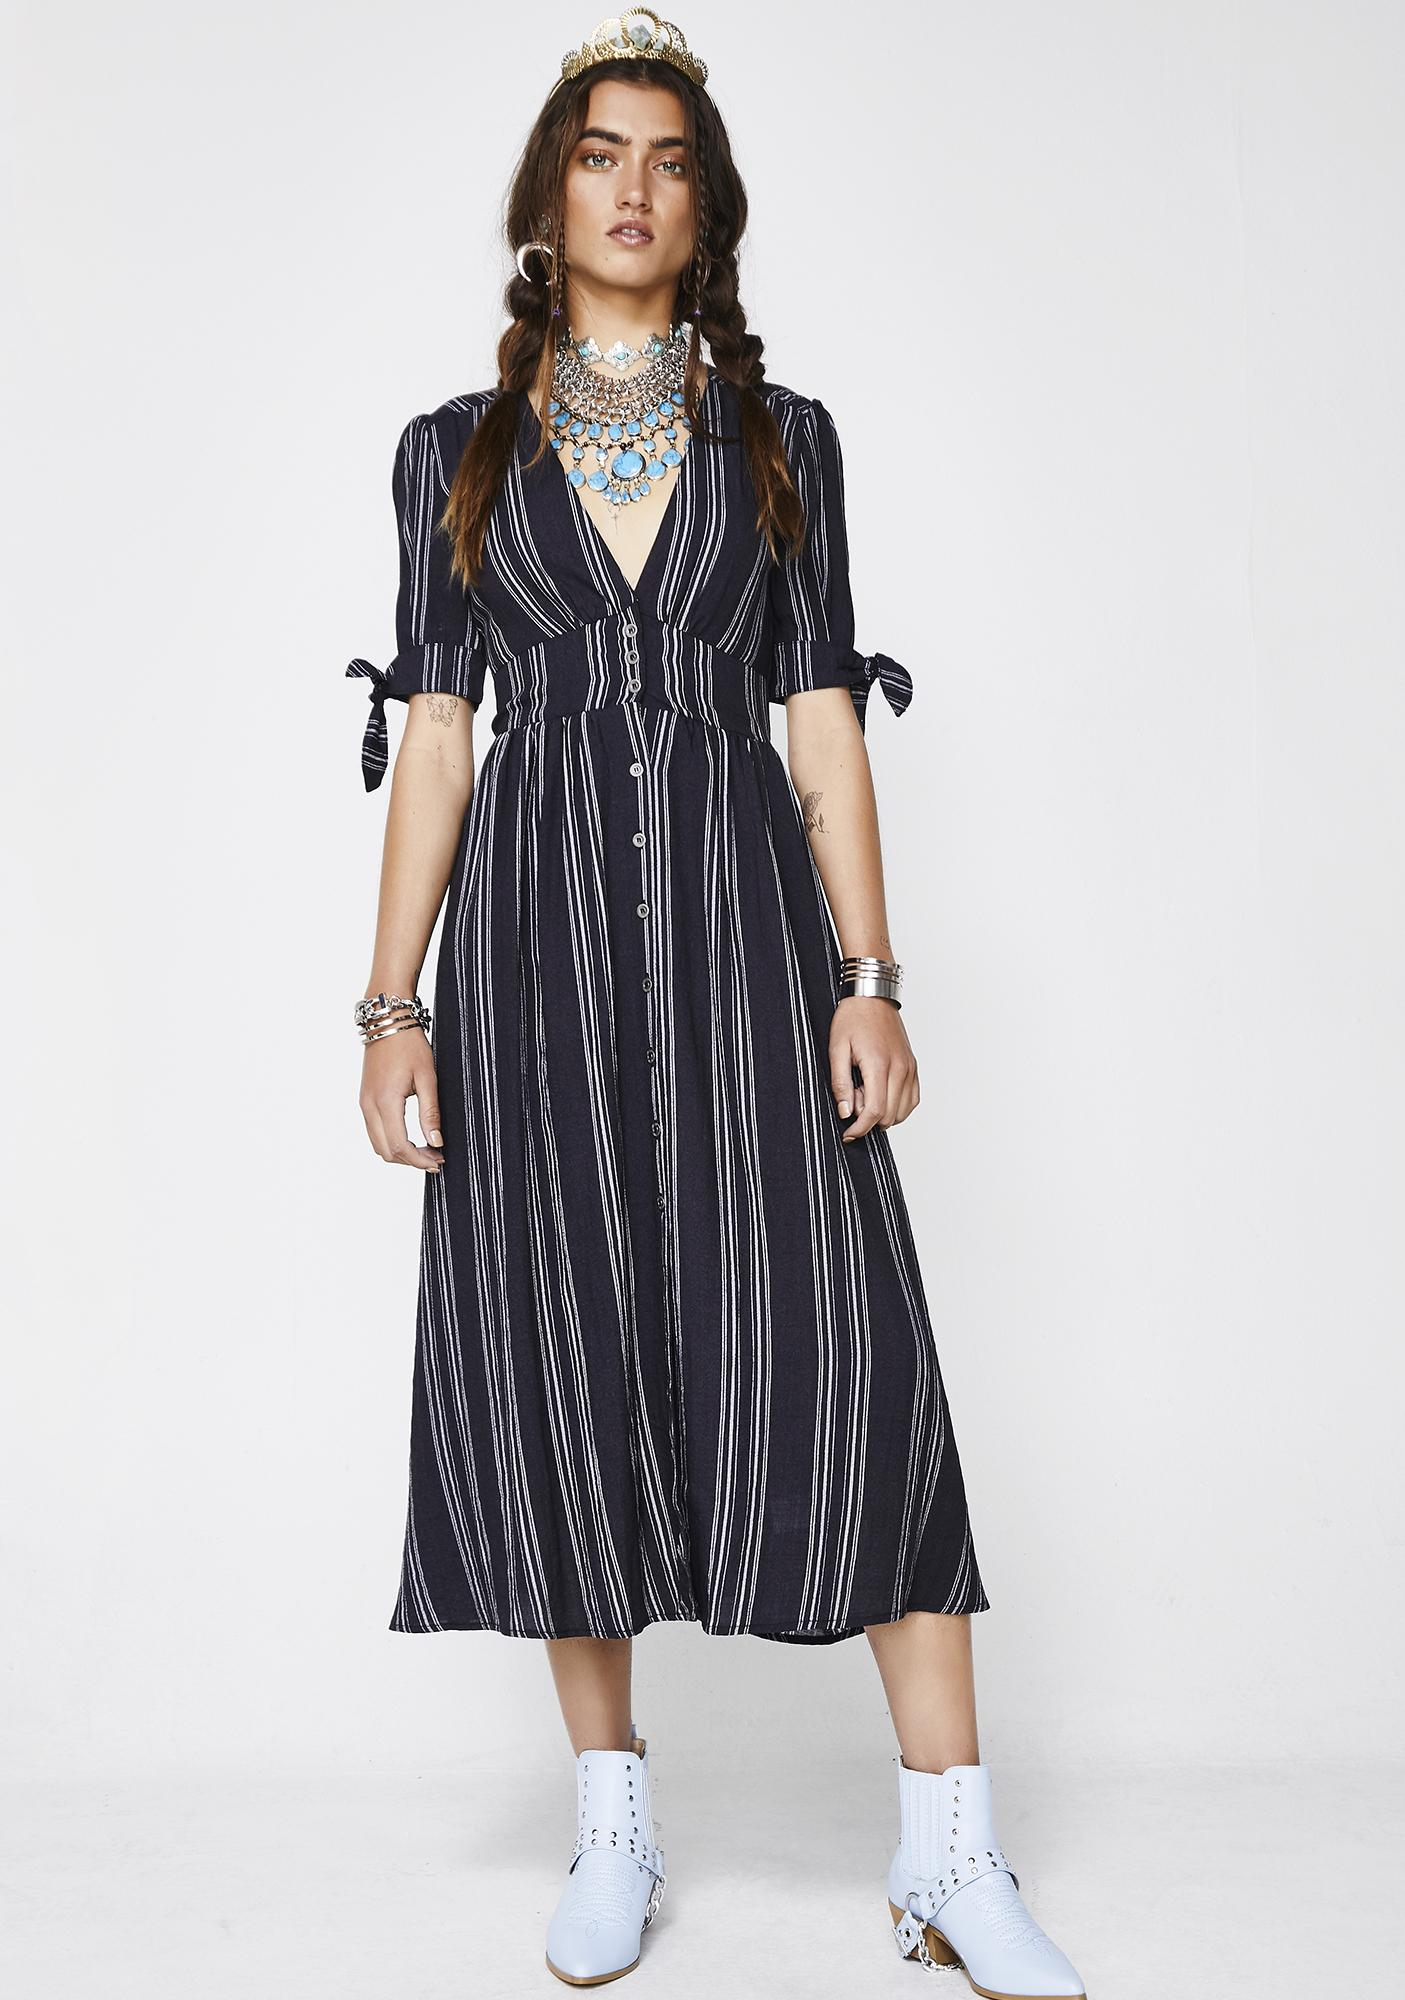 Lira Clothing Maverick Midi Dress